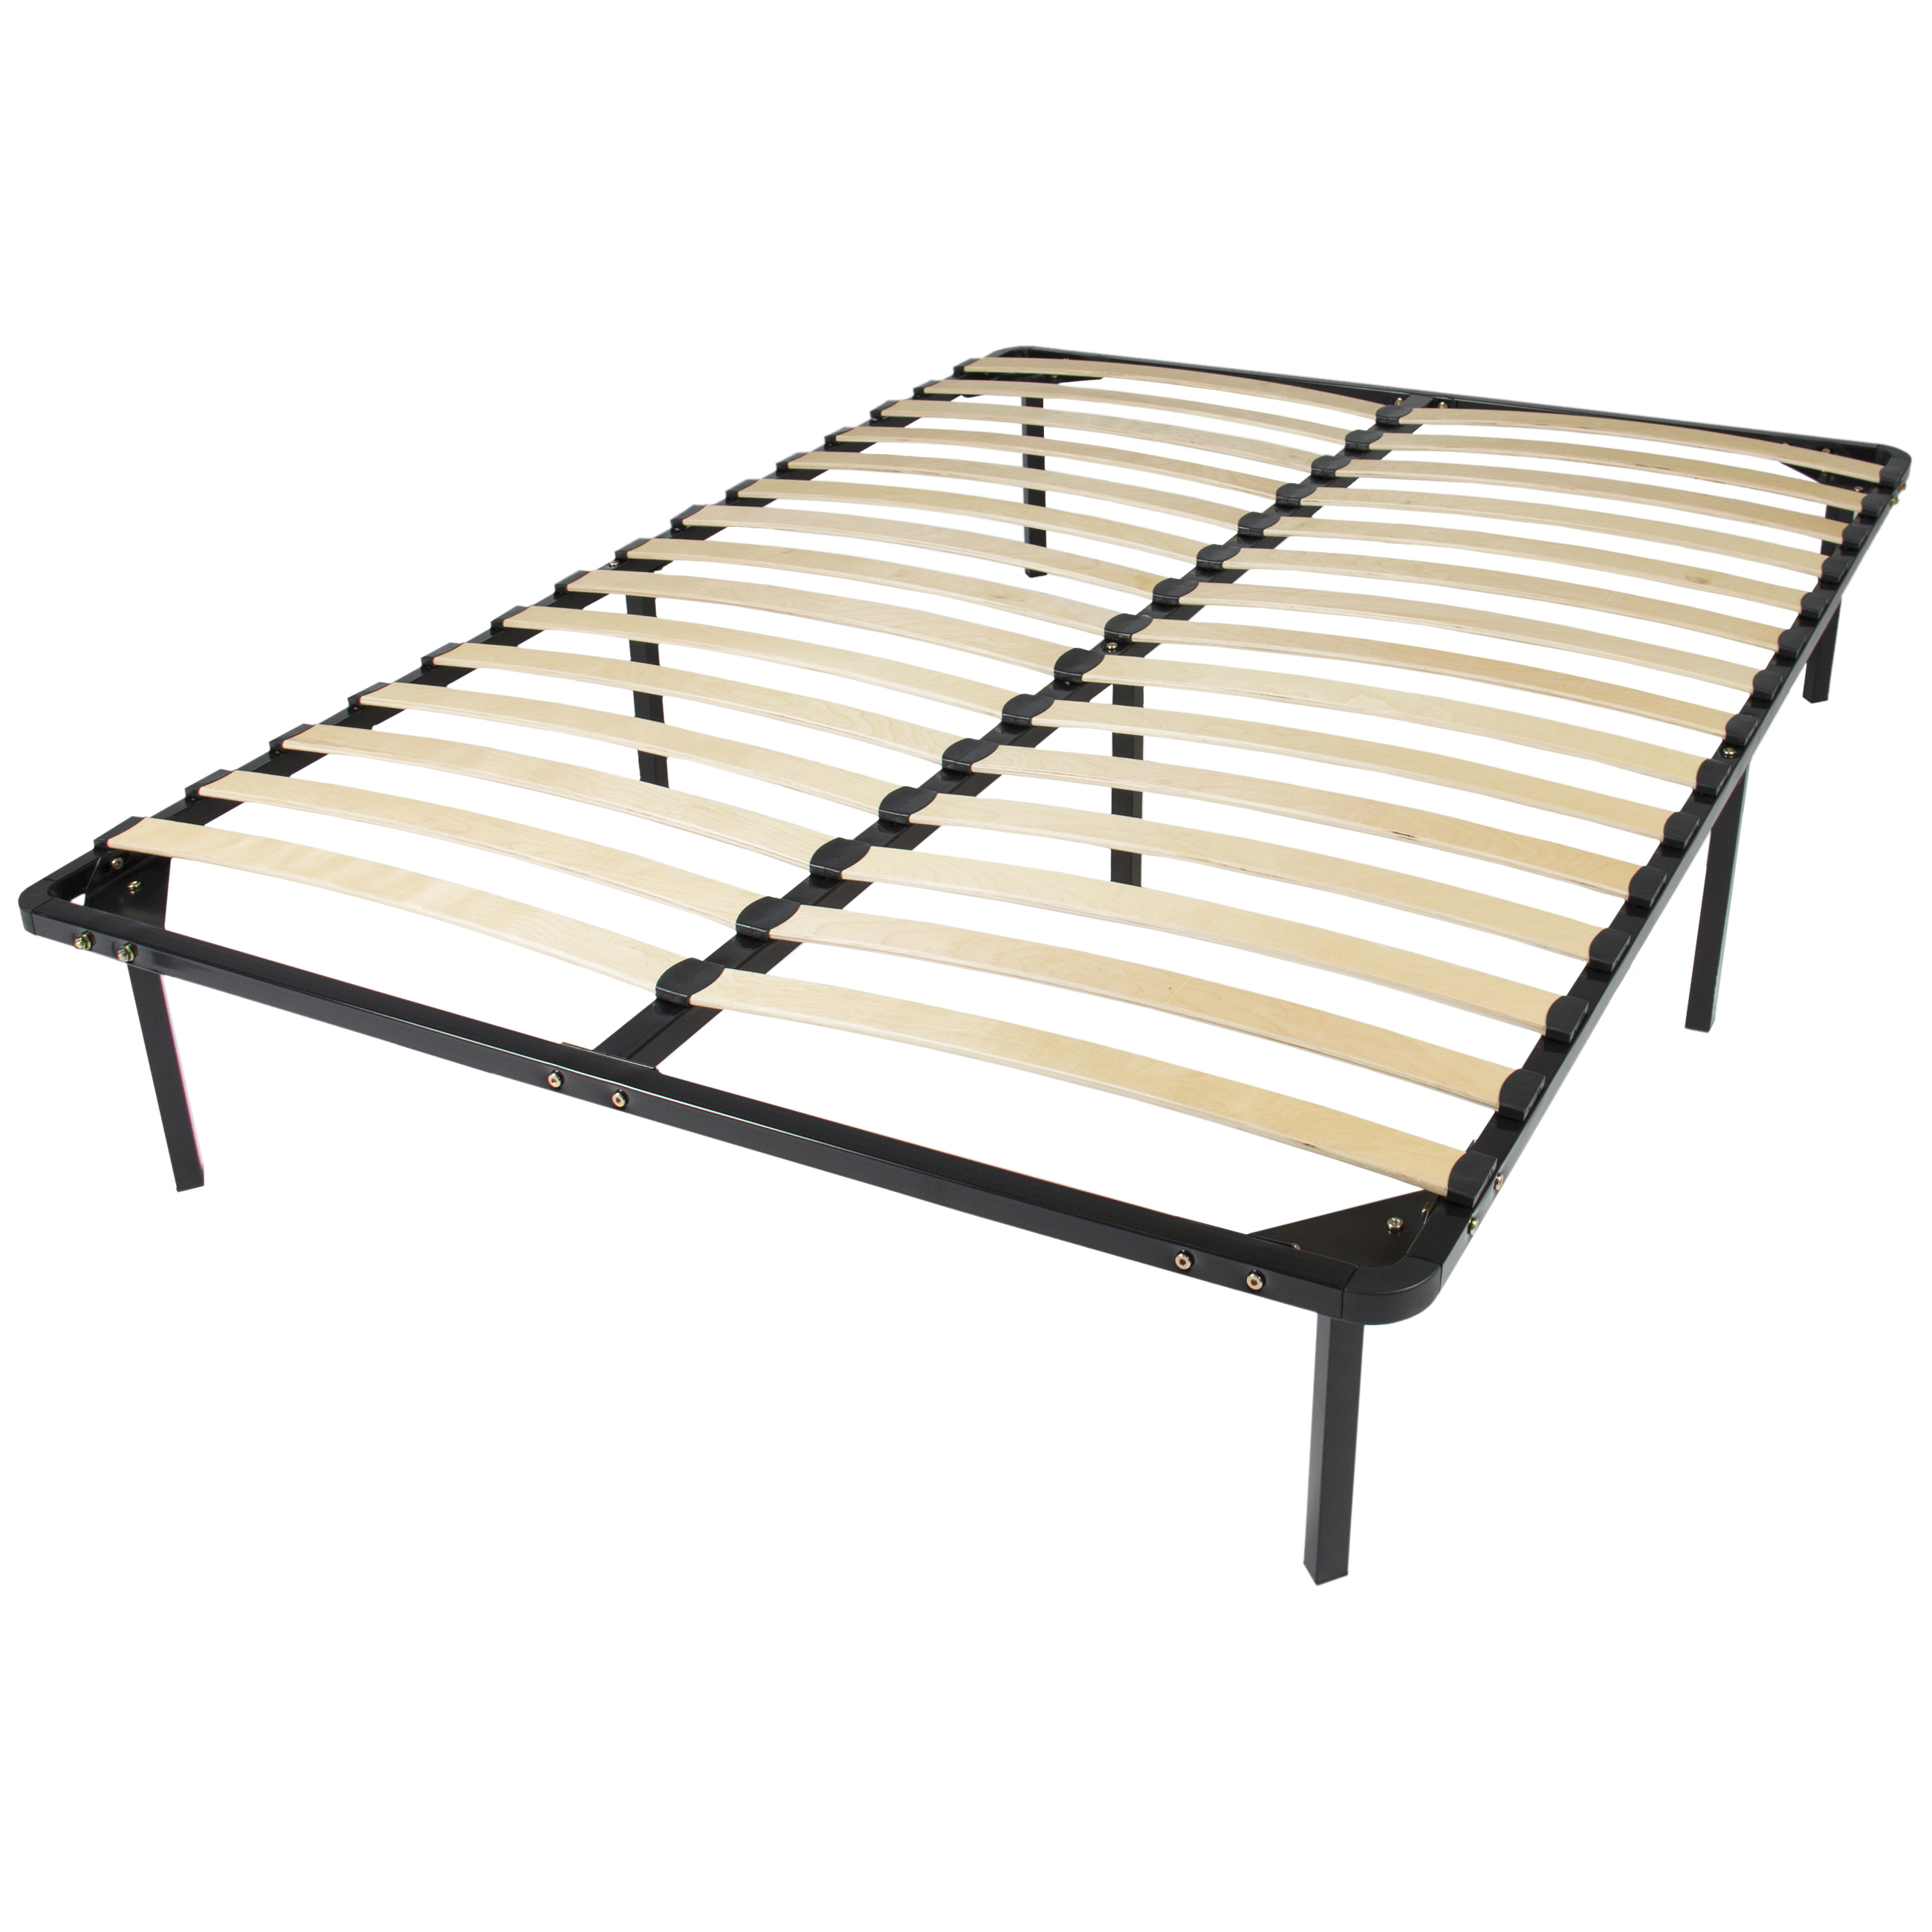 Wooden Slat Metal Bed Frame Wood Platform Bedroom Mattress Foundation Queen by